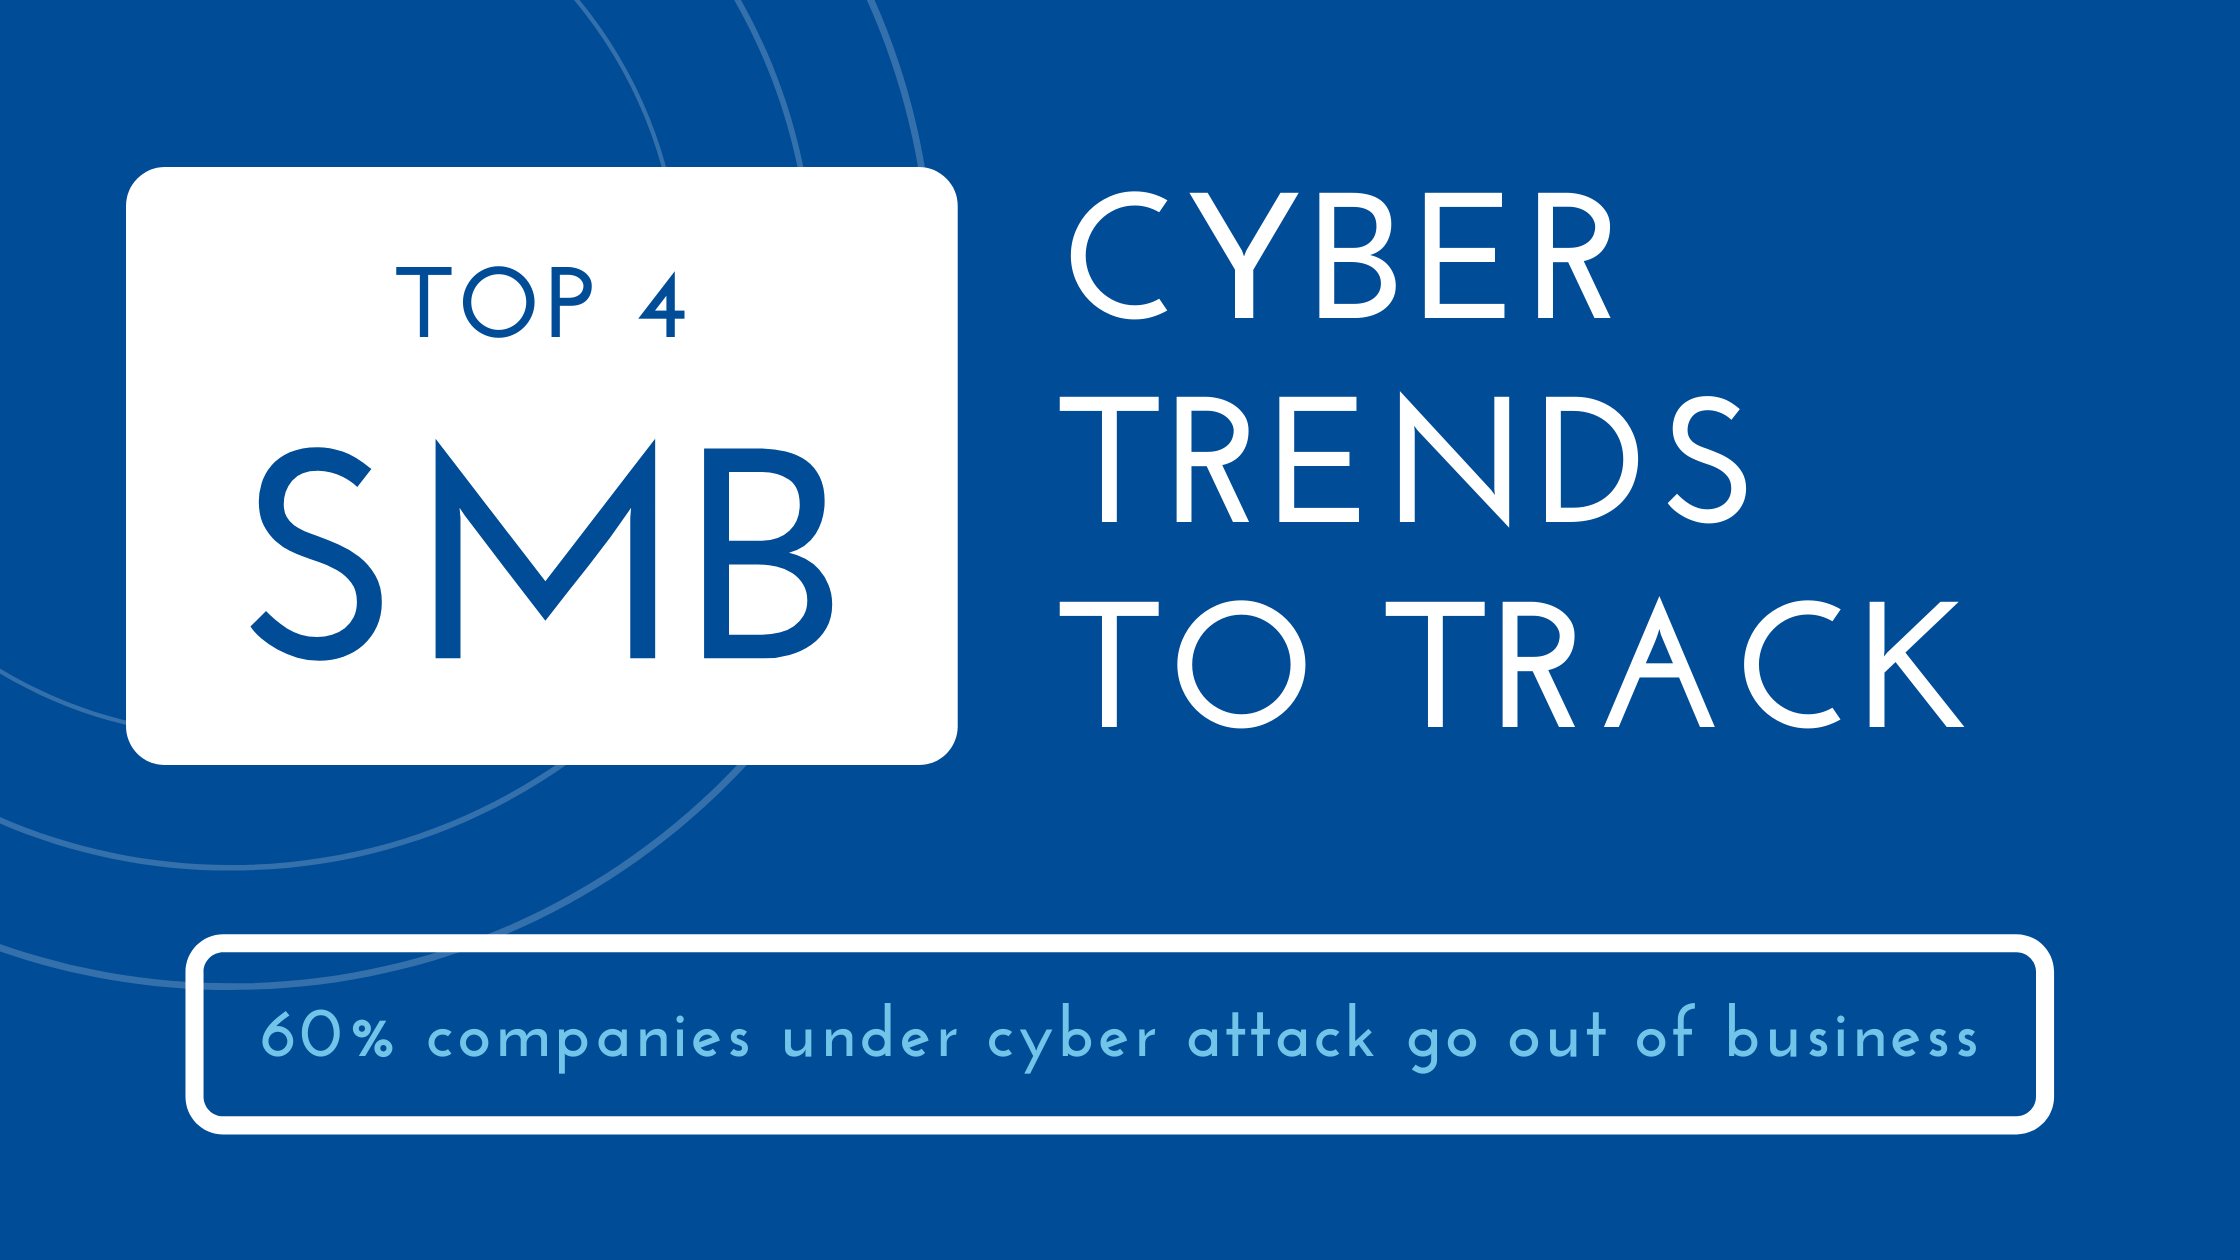 SMB Cyber Security Protection Starts with Employee Training and Passwords